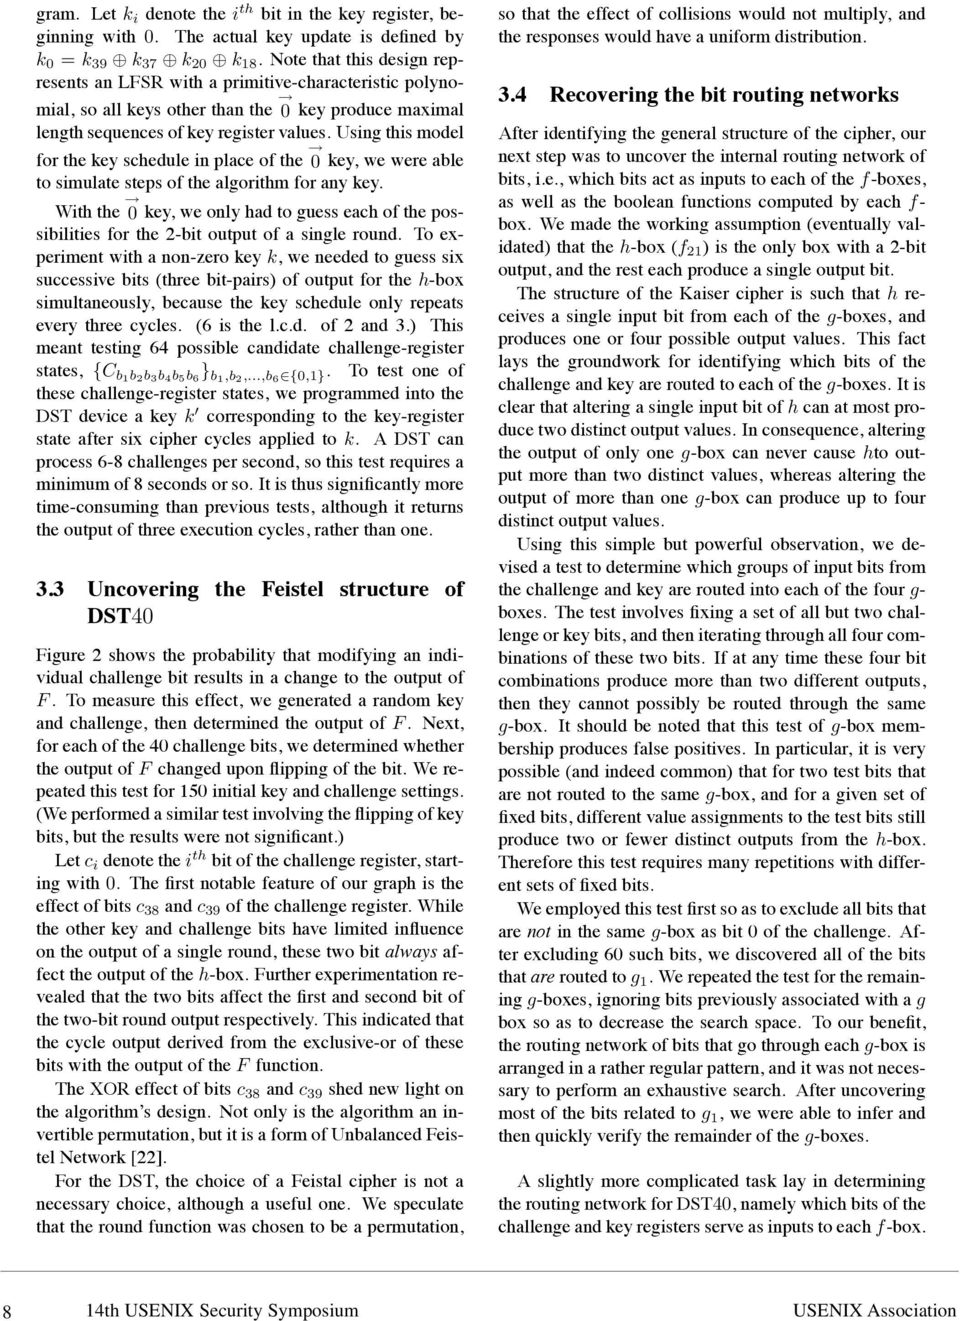 Using this model for the key schedule in place of the 0 key, we were able to simulate steps of the algorithm for any key.